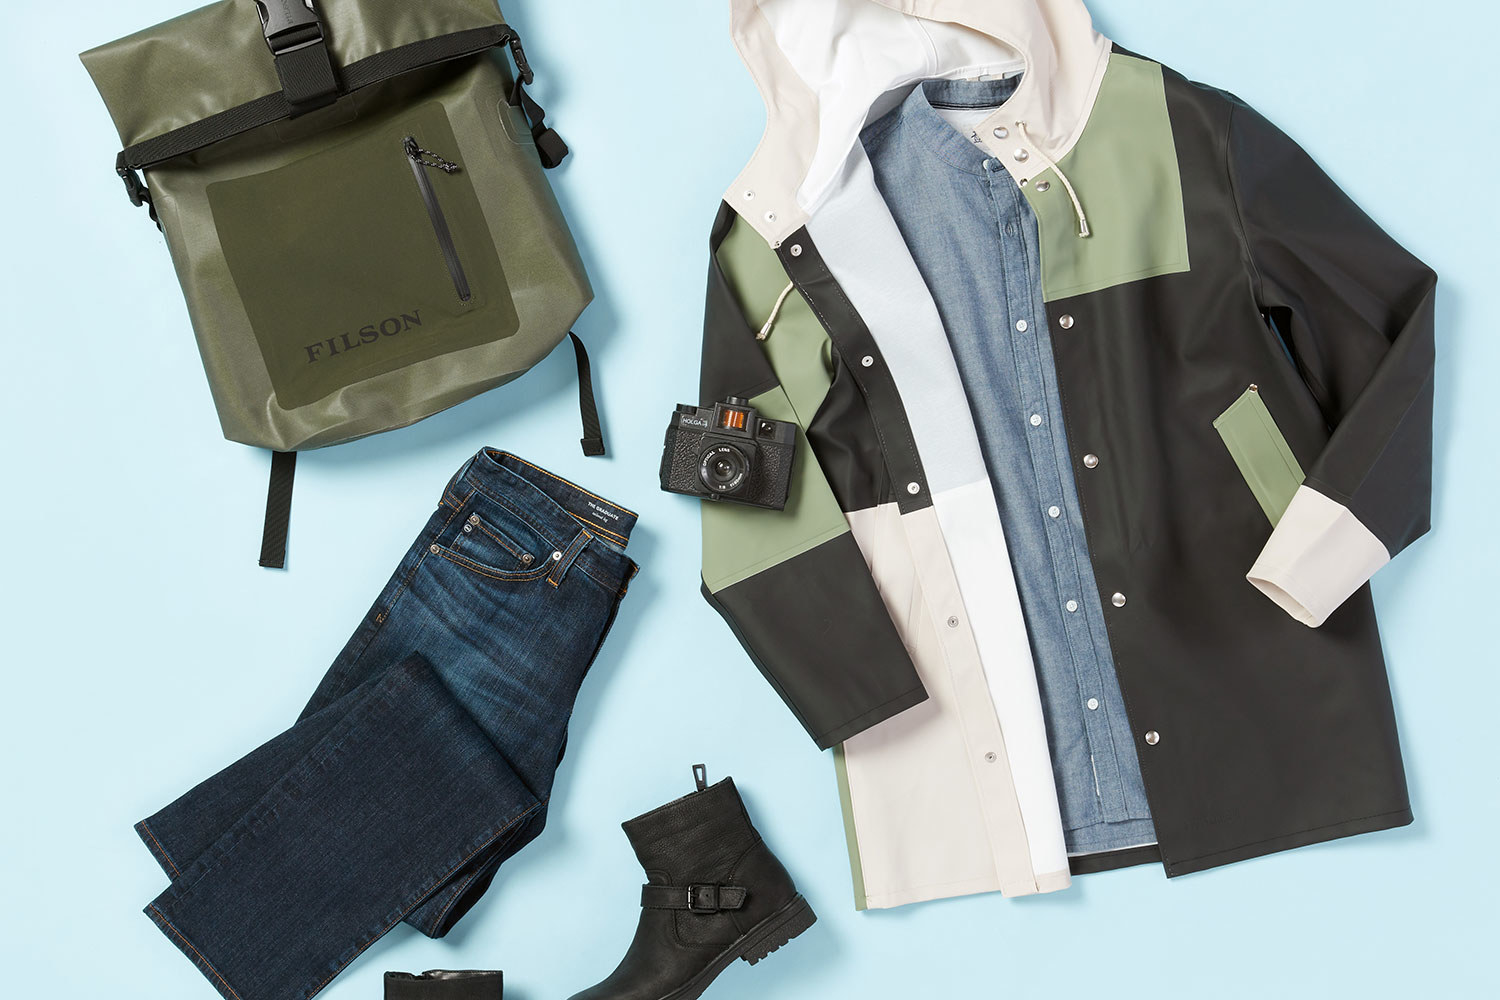 Trunk Club Box items including dark denim, a green, black, and white raincoat, and a green backpack